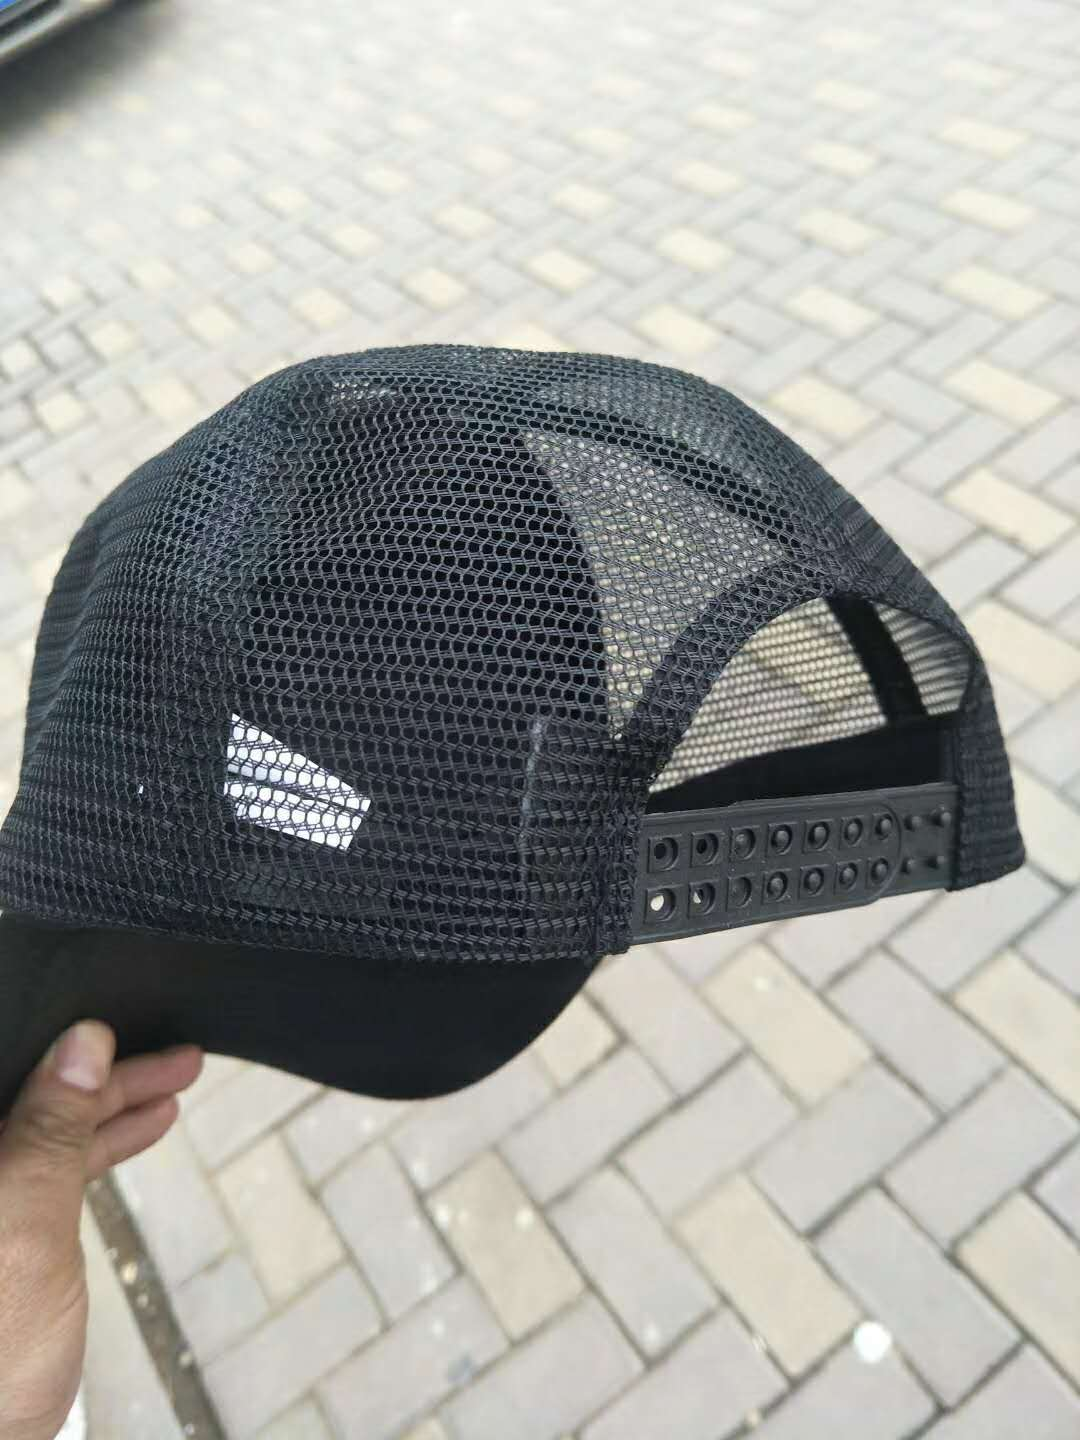 32072 - Men Summer hats China